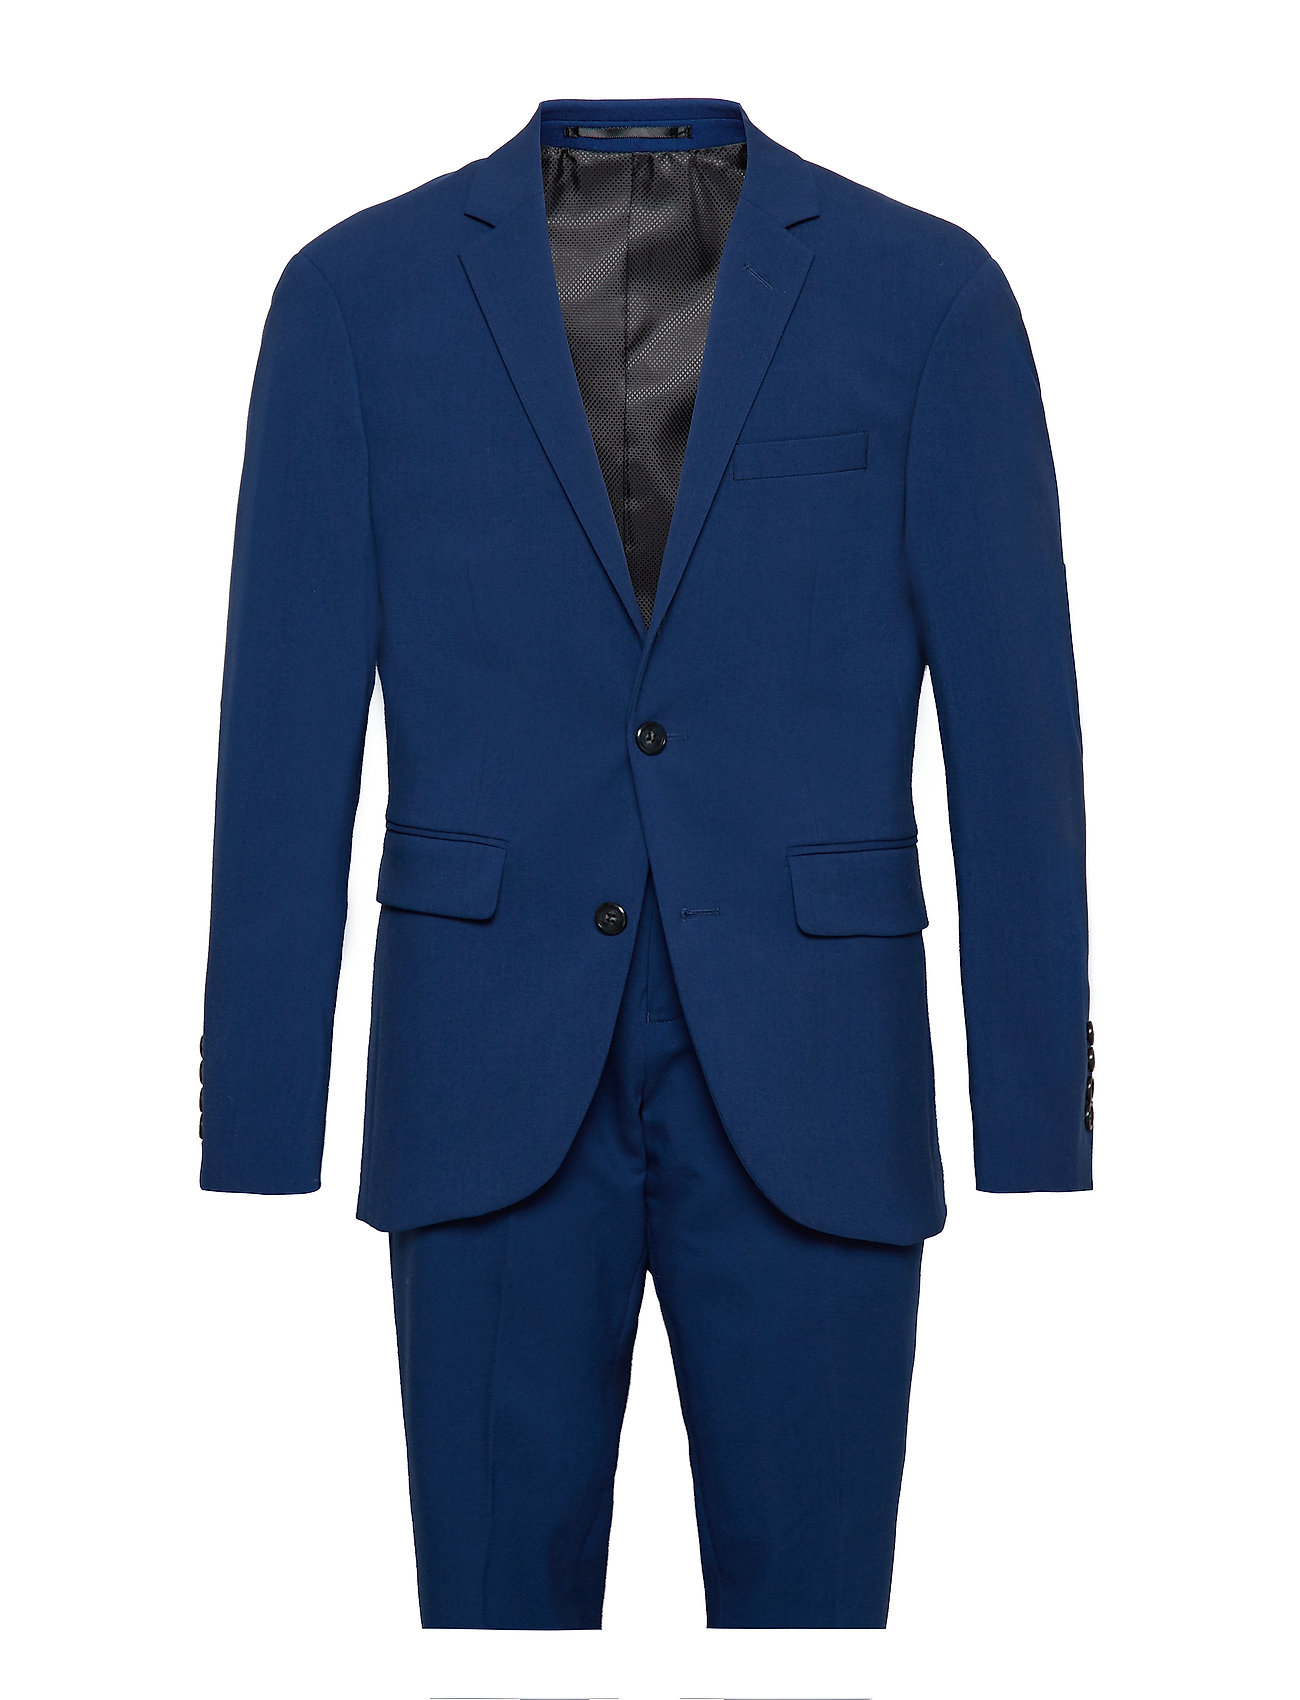 Lindbergh Mens suit - BLUE